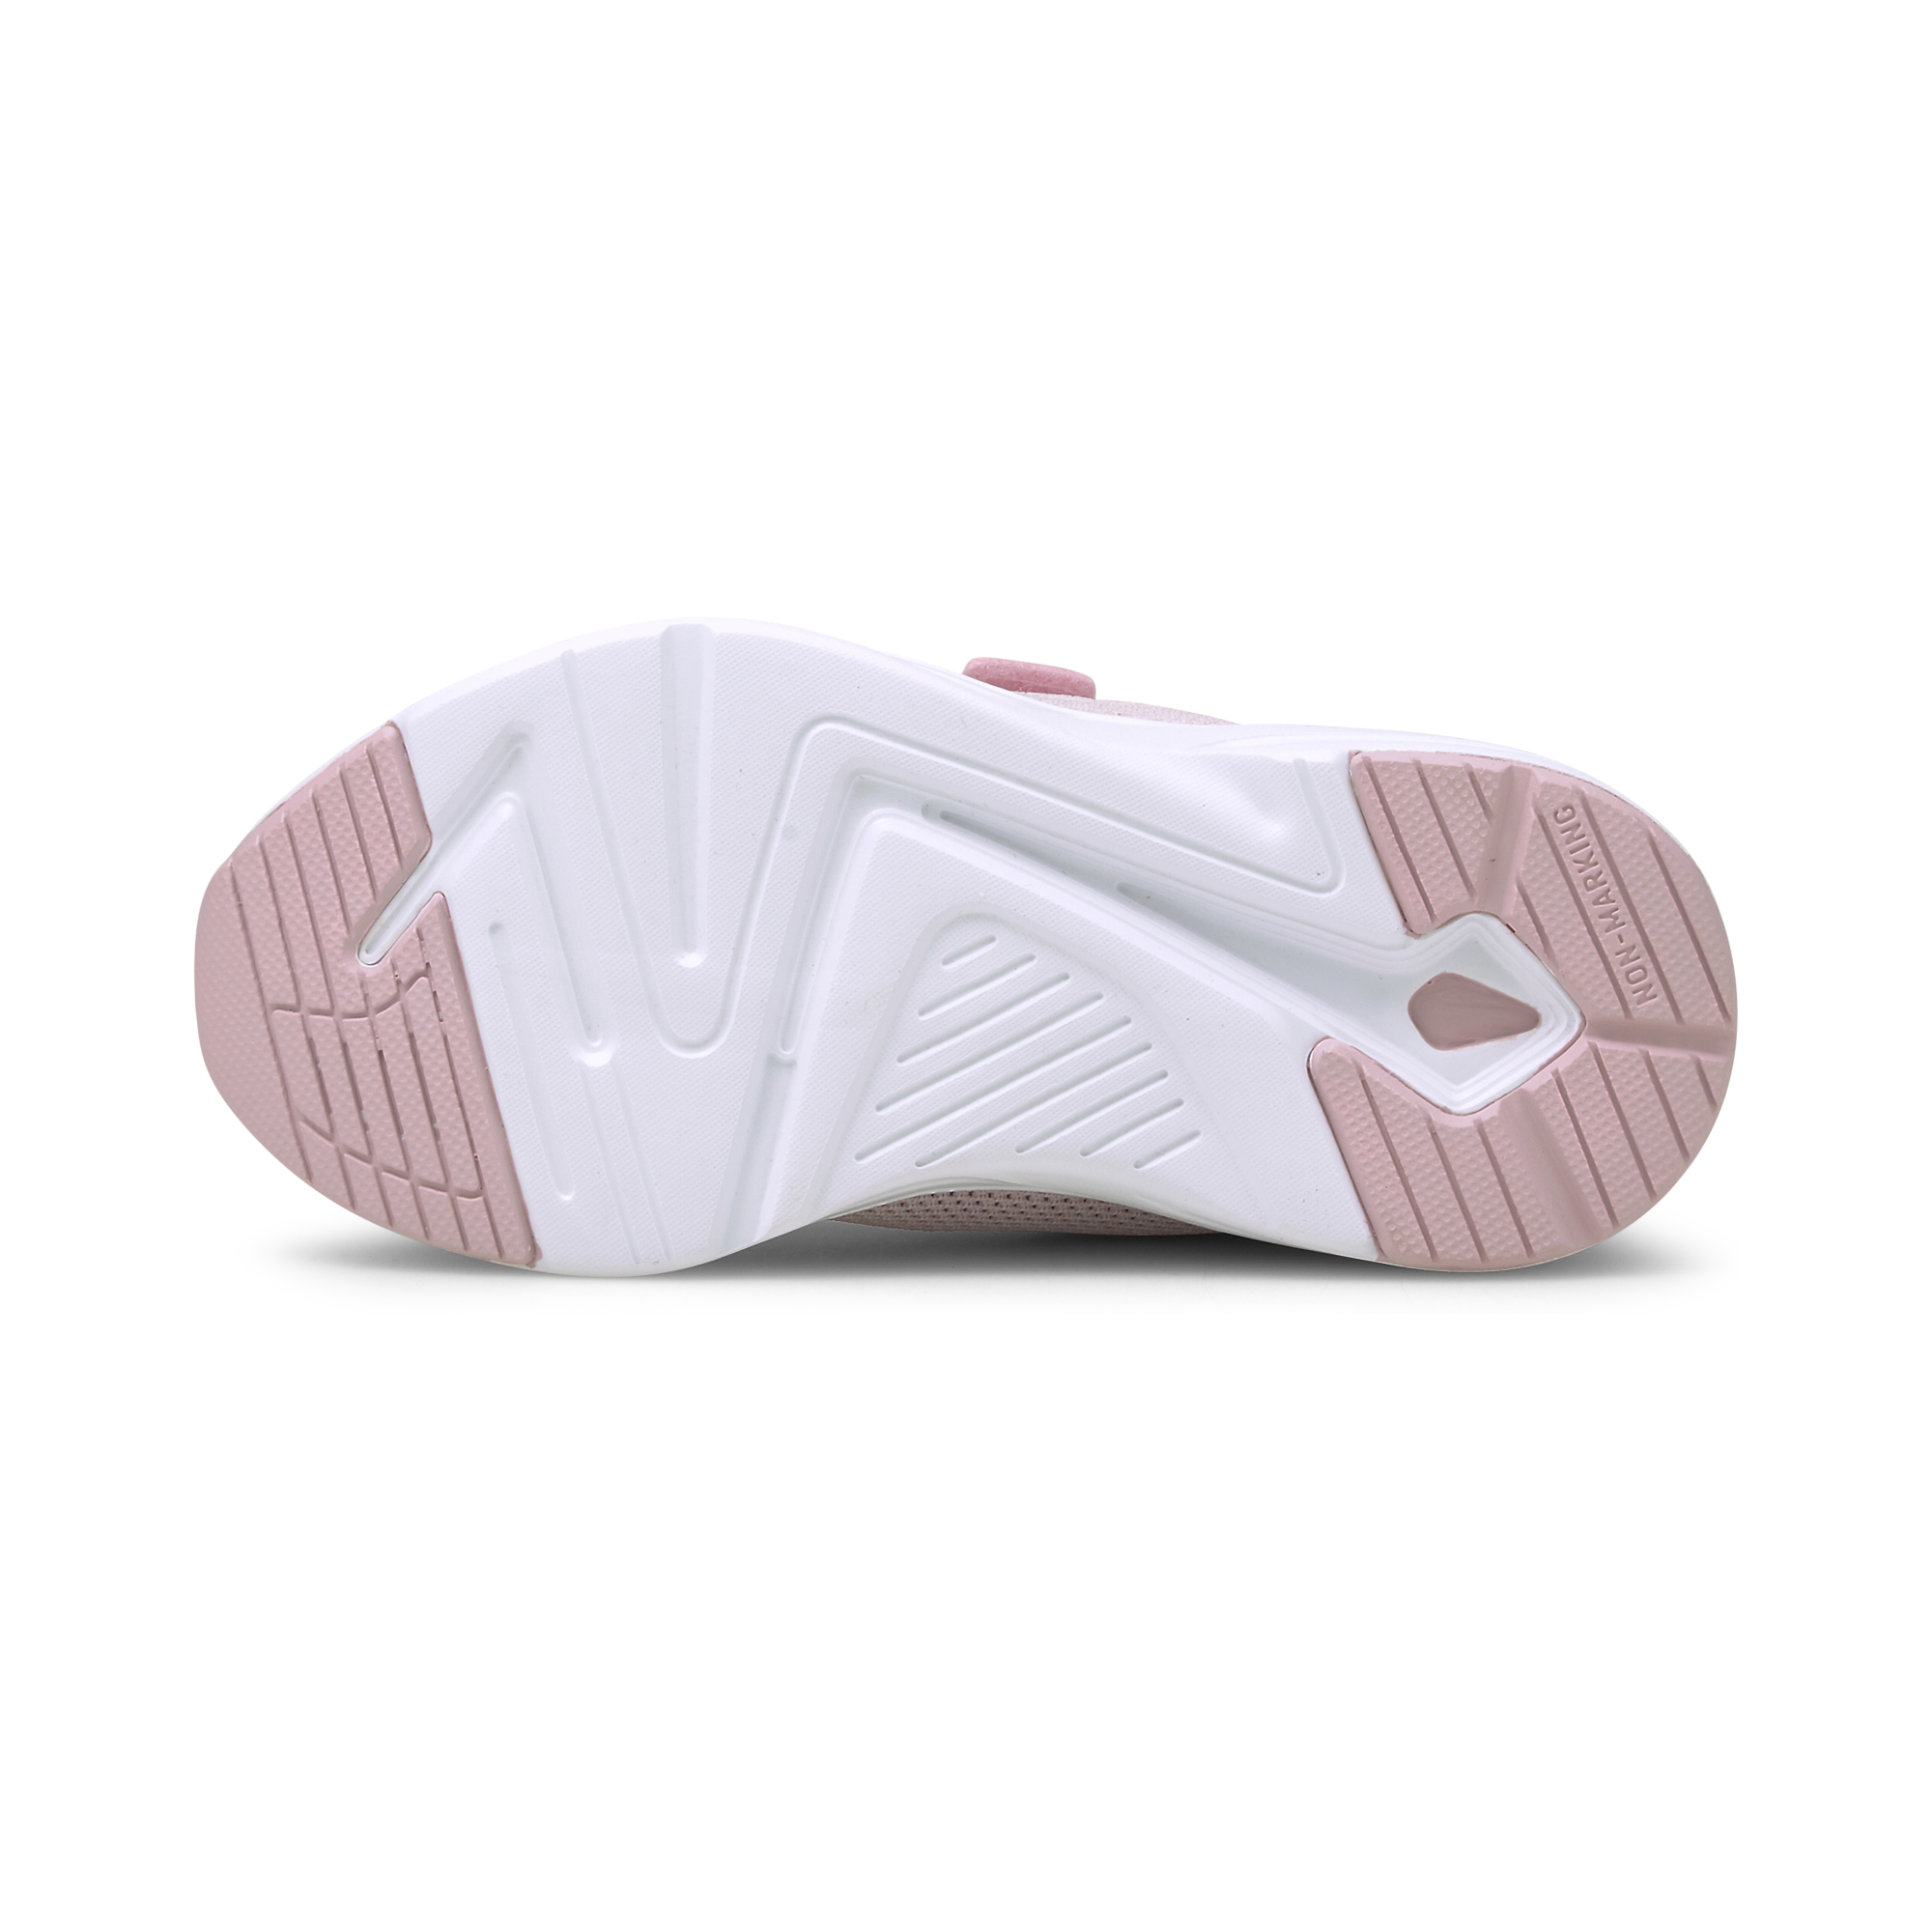 Puma Comet 2 FS V PS sneakers, pink lady, 28